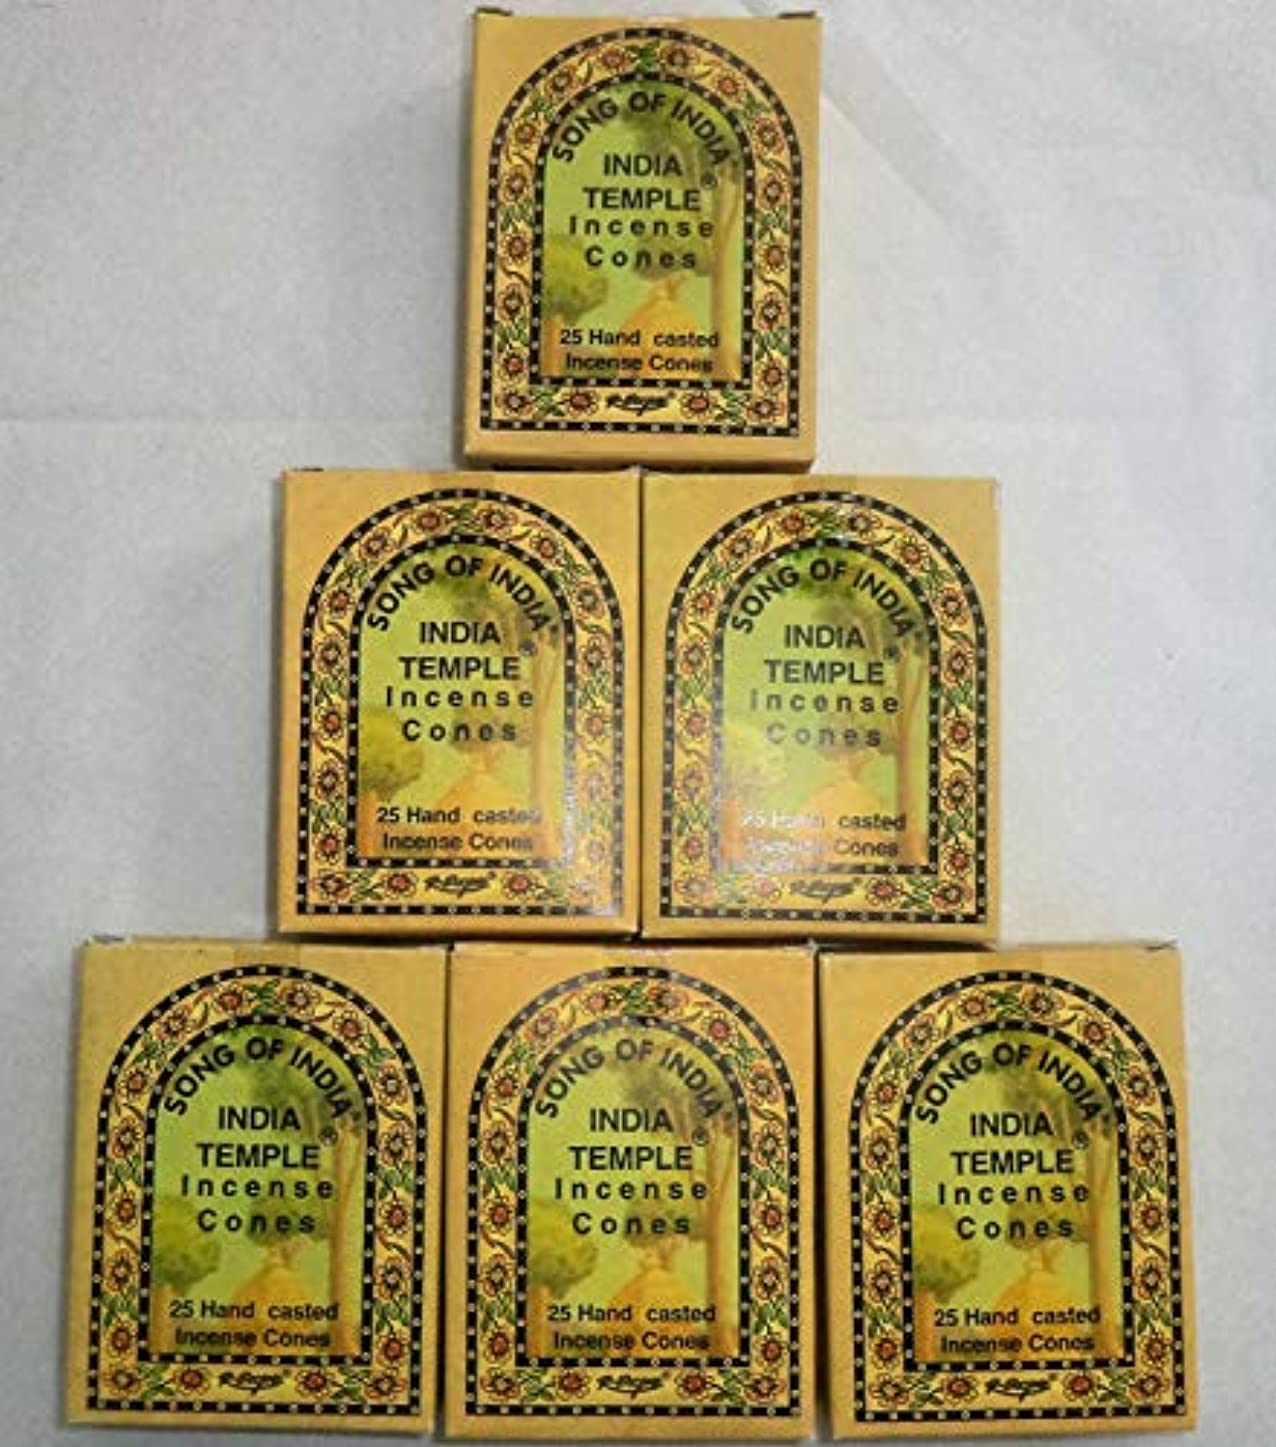 ベテランタックしなやかSong of India Temple Cone Incense, 6 x 25 Cone Pack, 150 Cones Total